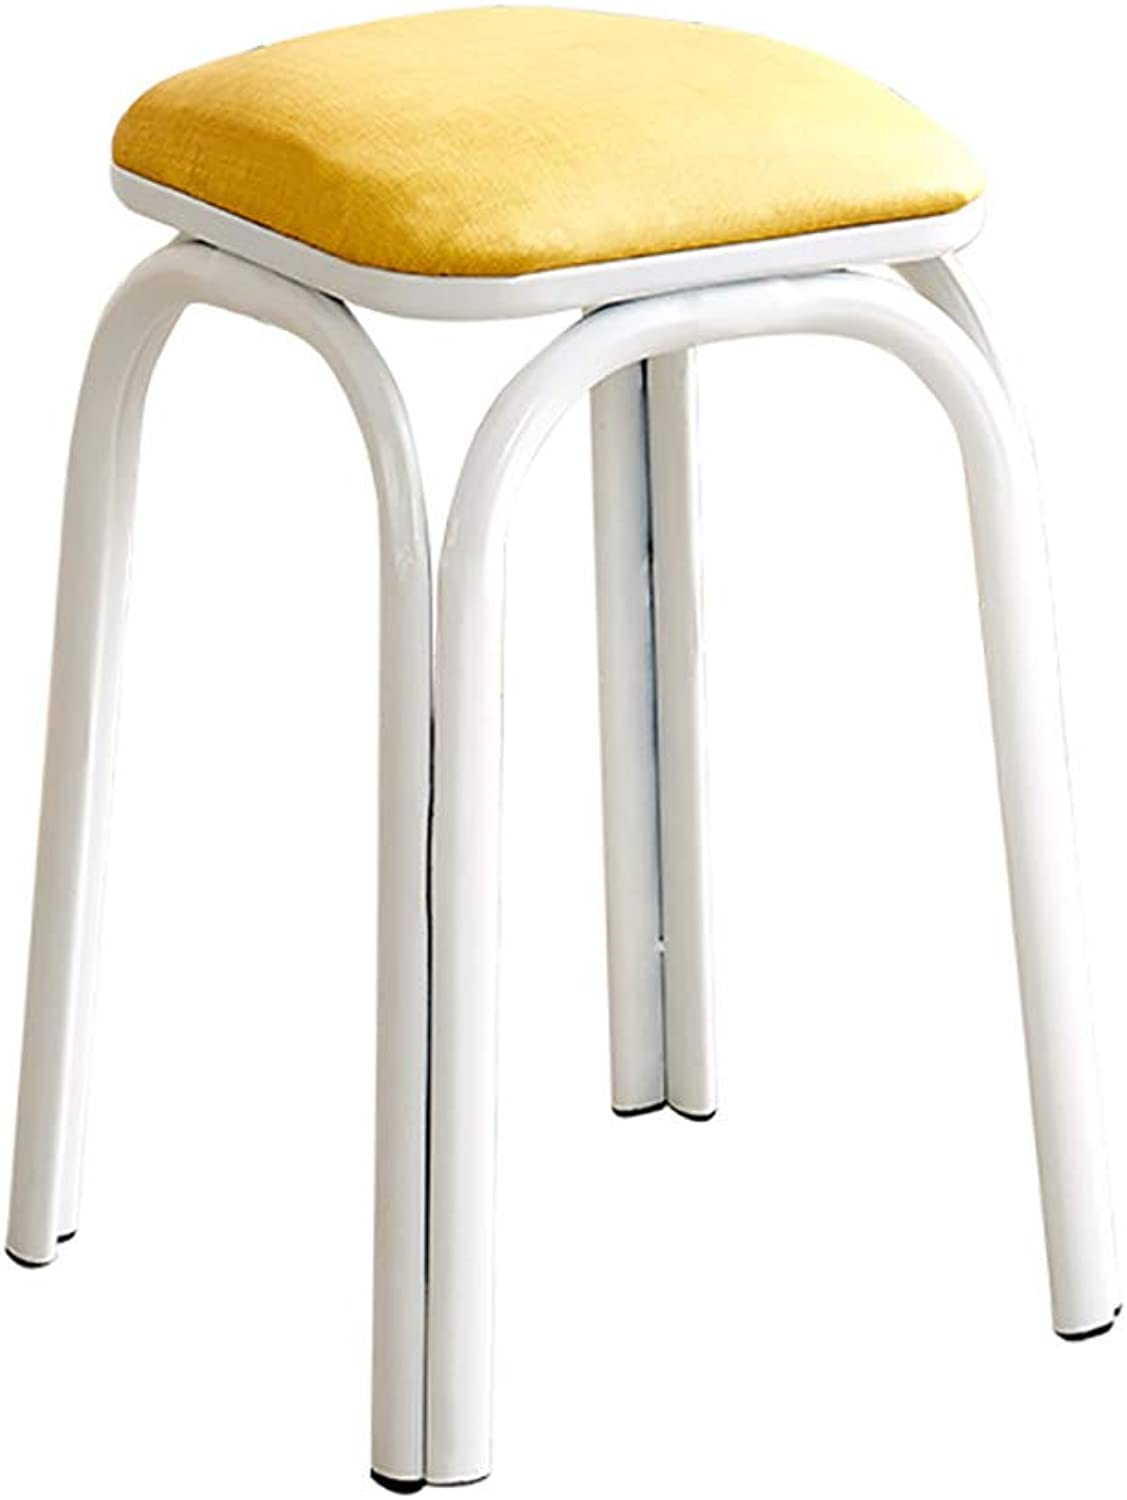 Stool Iron Stool Table Stool Living Room high Stool Fashion Creativity Square Four feet Solid color Size  26  26  46cm (color   D)